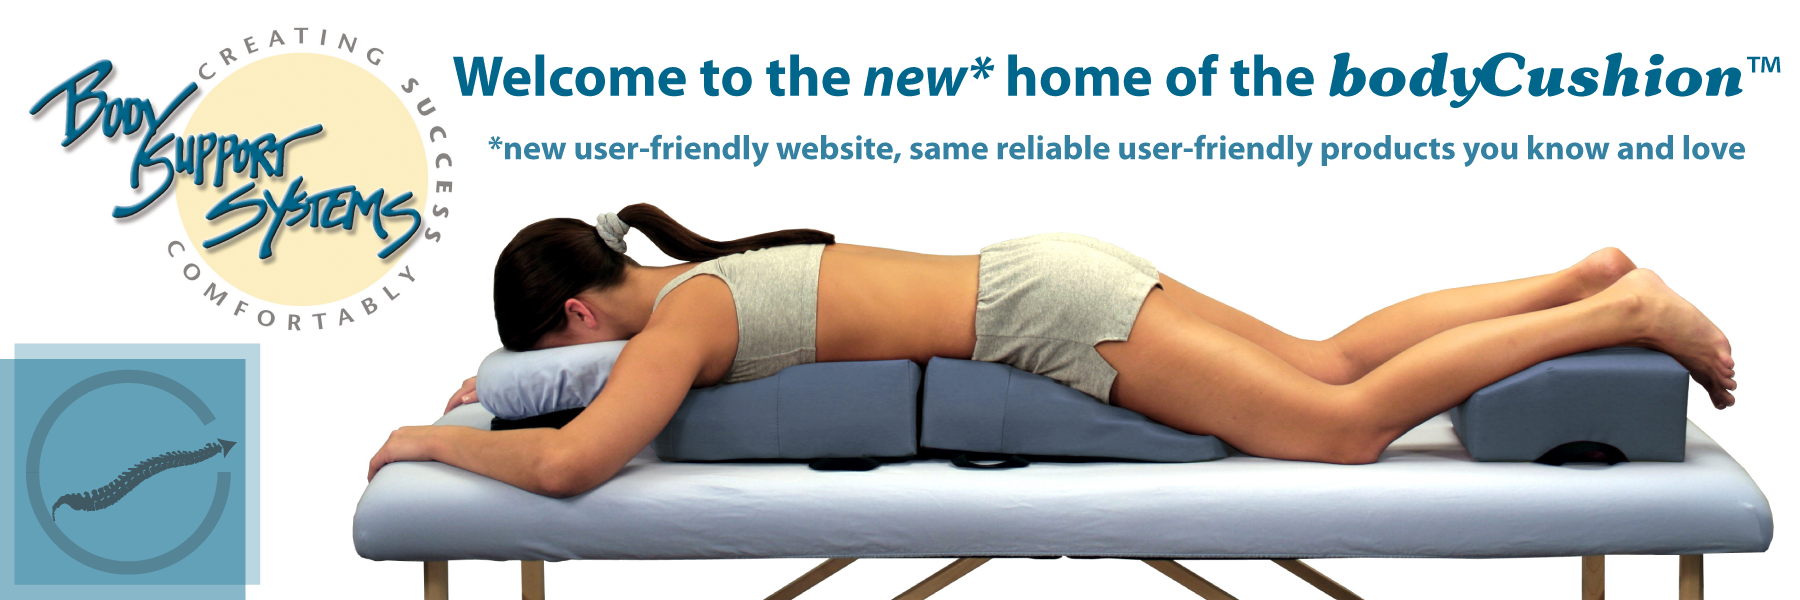 Welcome to the new home of the bodyCushion: new user-friendly website, same reliable user-friendly products you know and love